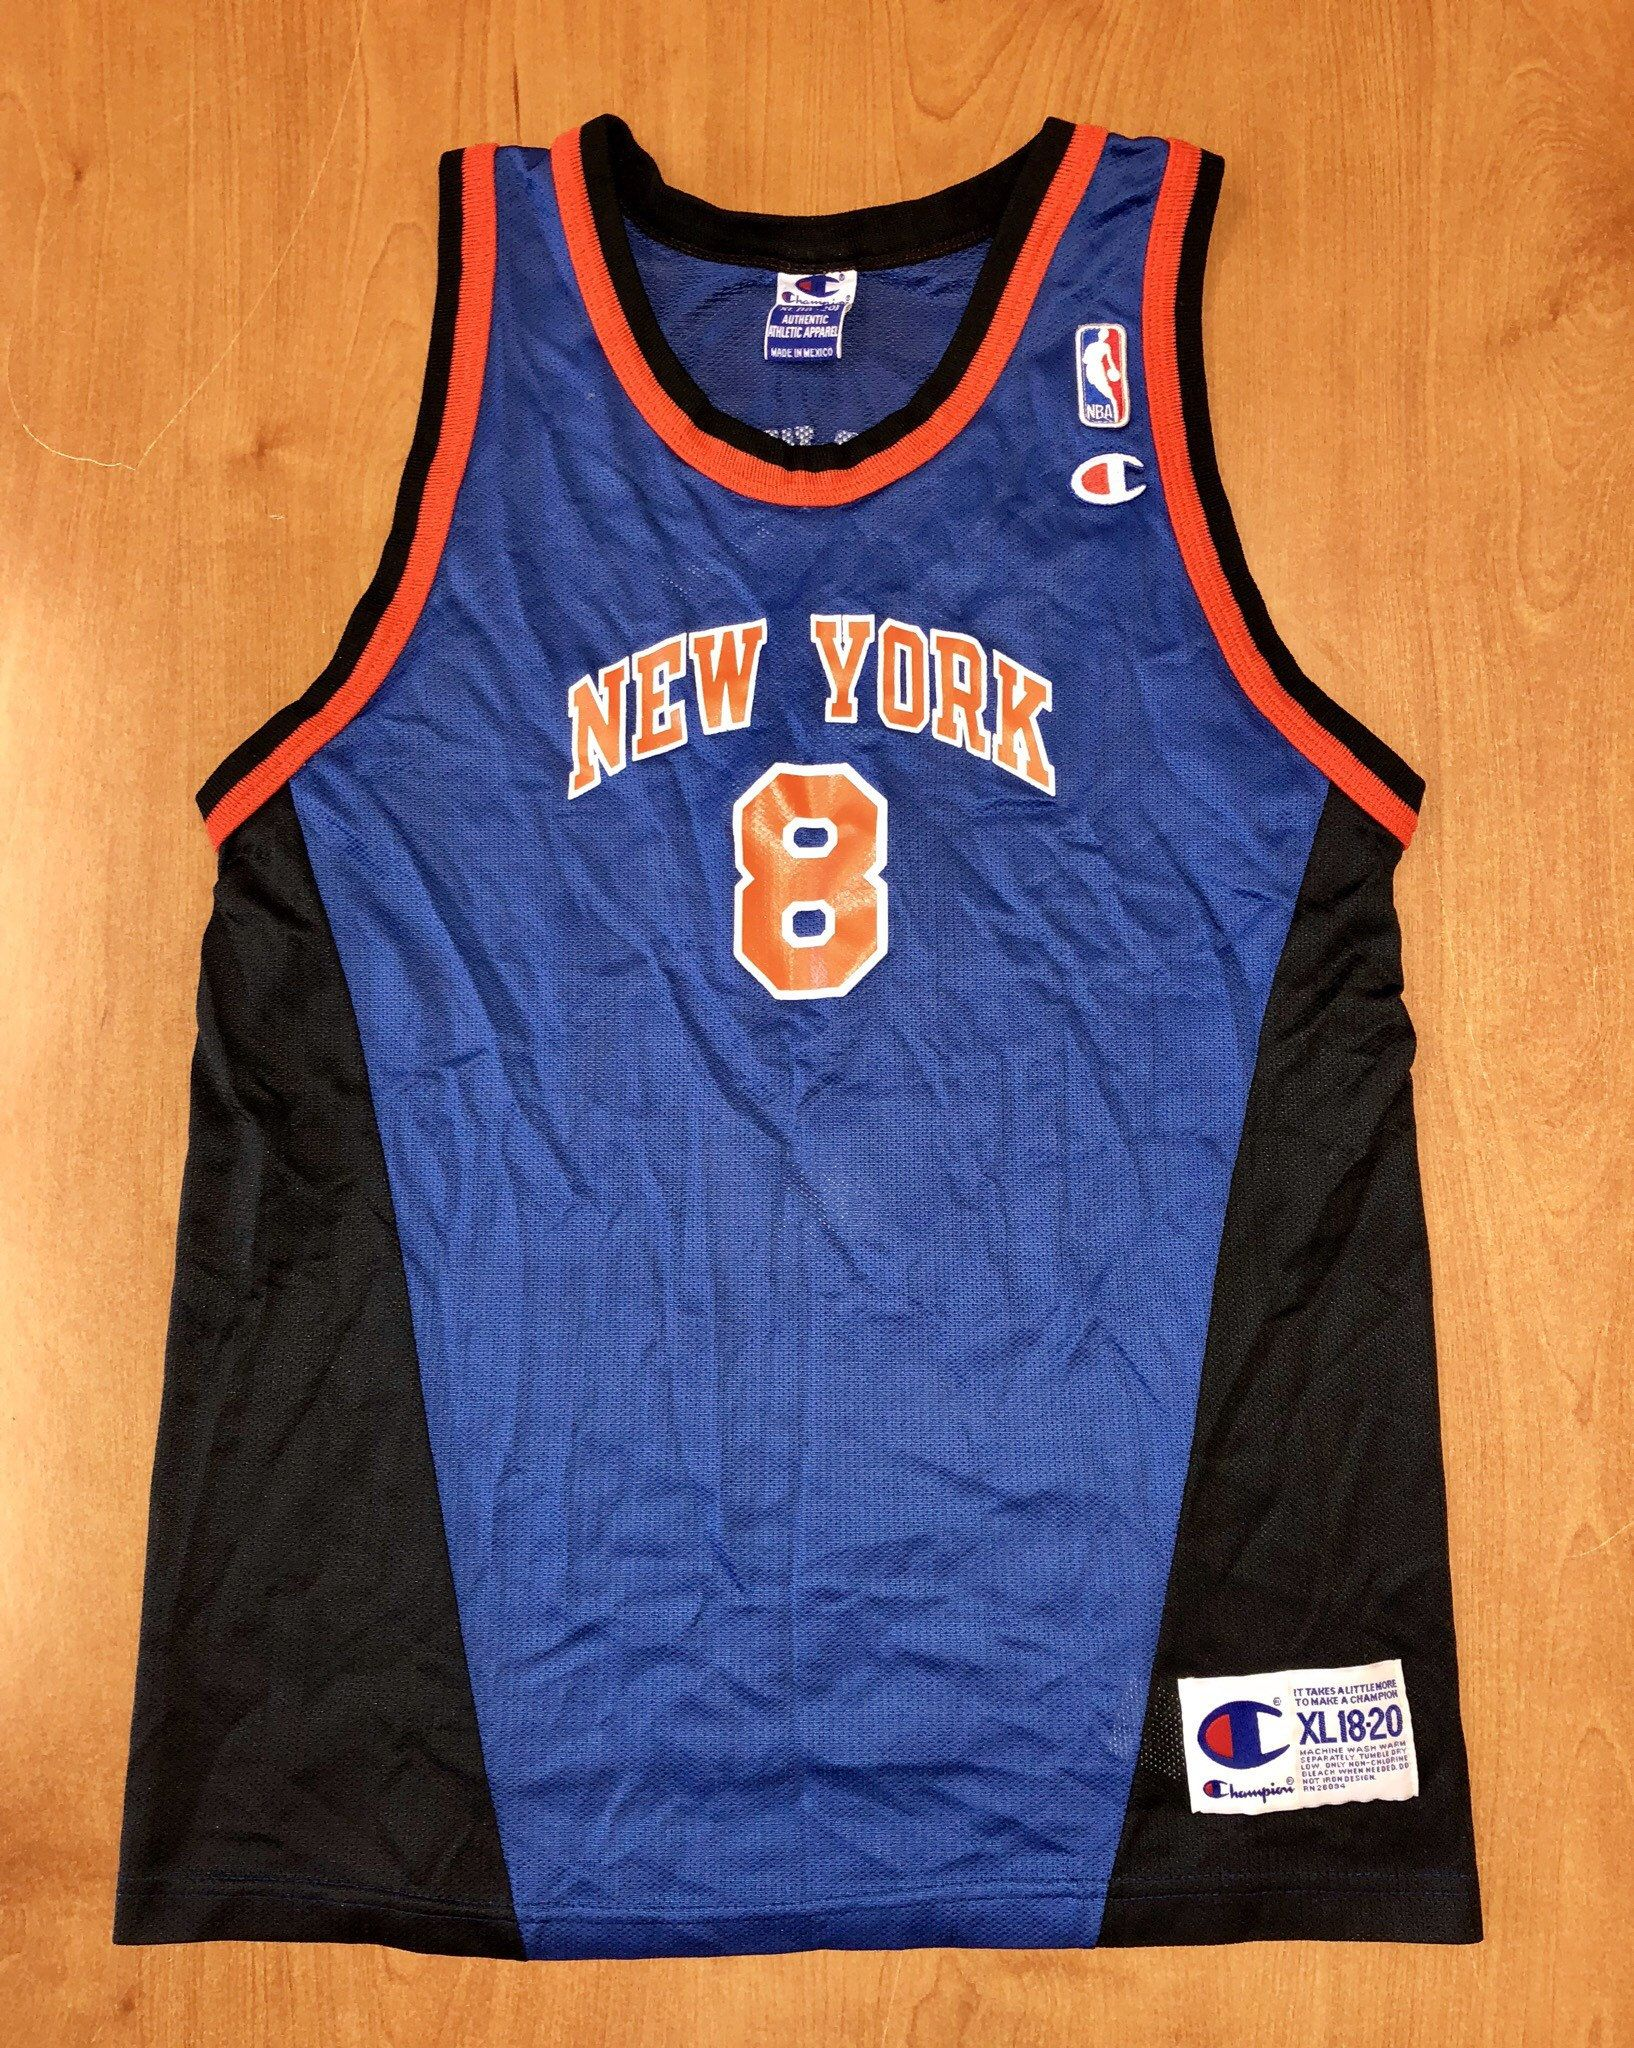 8f9e32ea4 Vintage 1998 Latrell Sprewell New York Knicks Champion Jersey Size Youth XL  kids shirt charles oakley nba finals penny hardaway alabama tide by ...